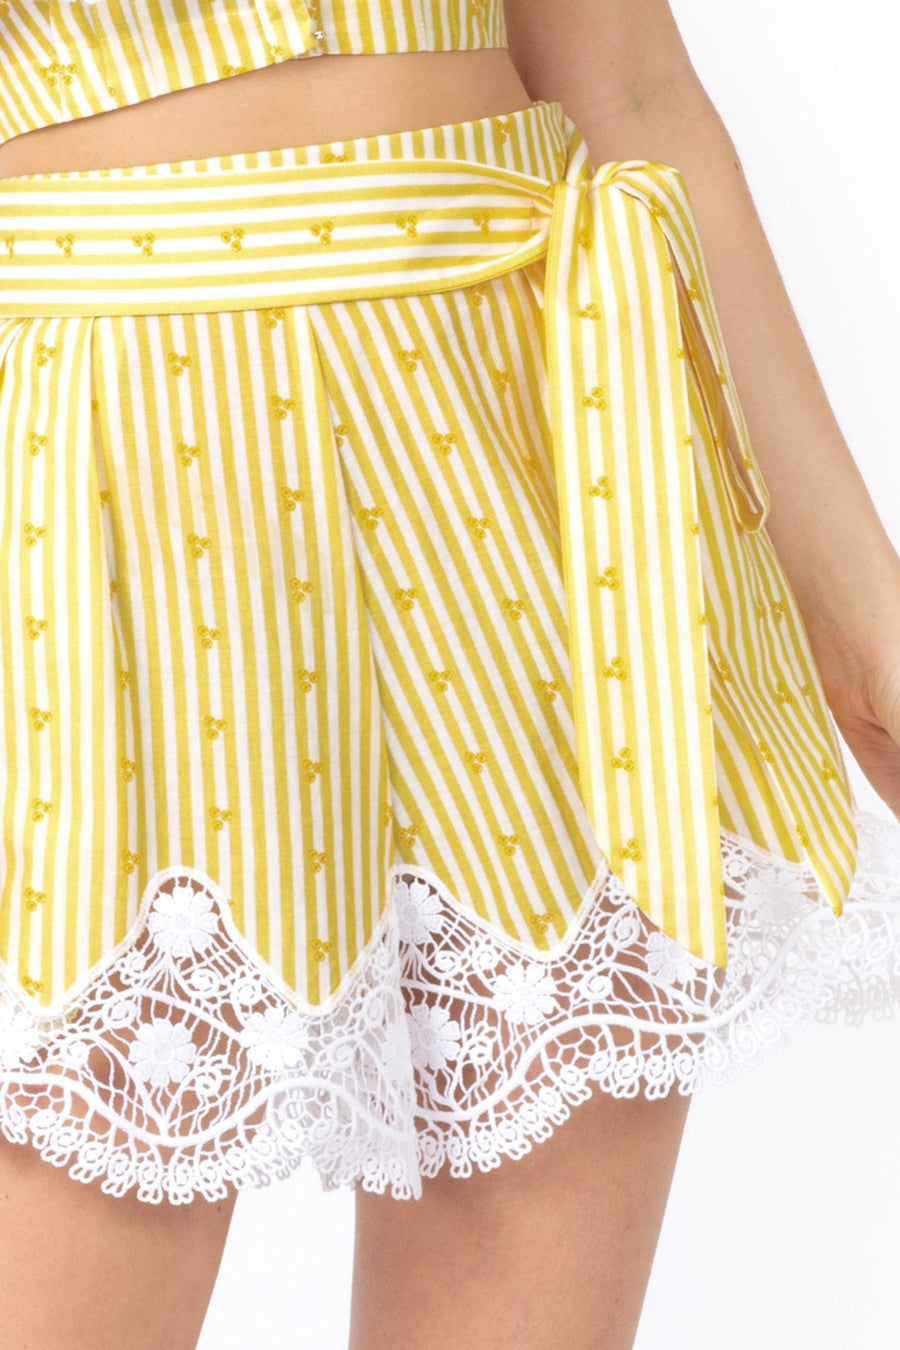 Liana Striped Dandelion Lace Shorts